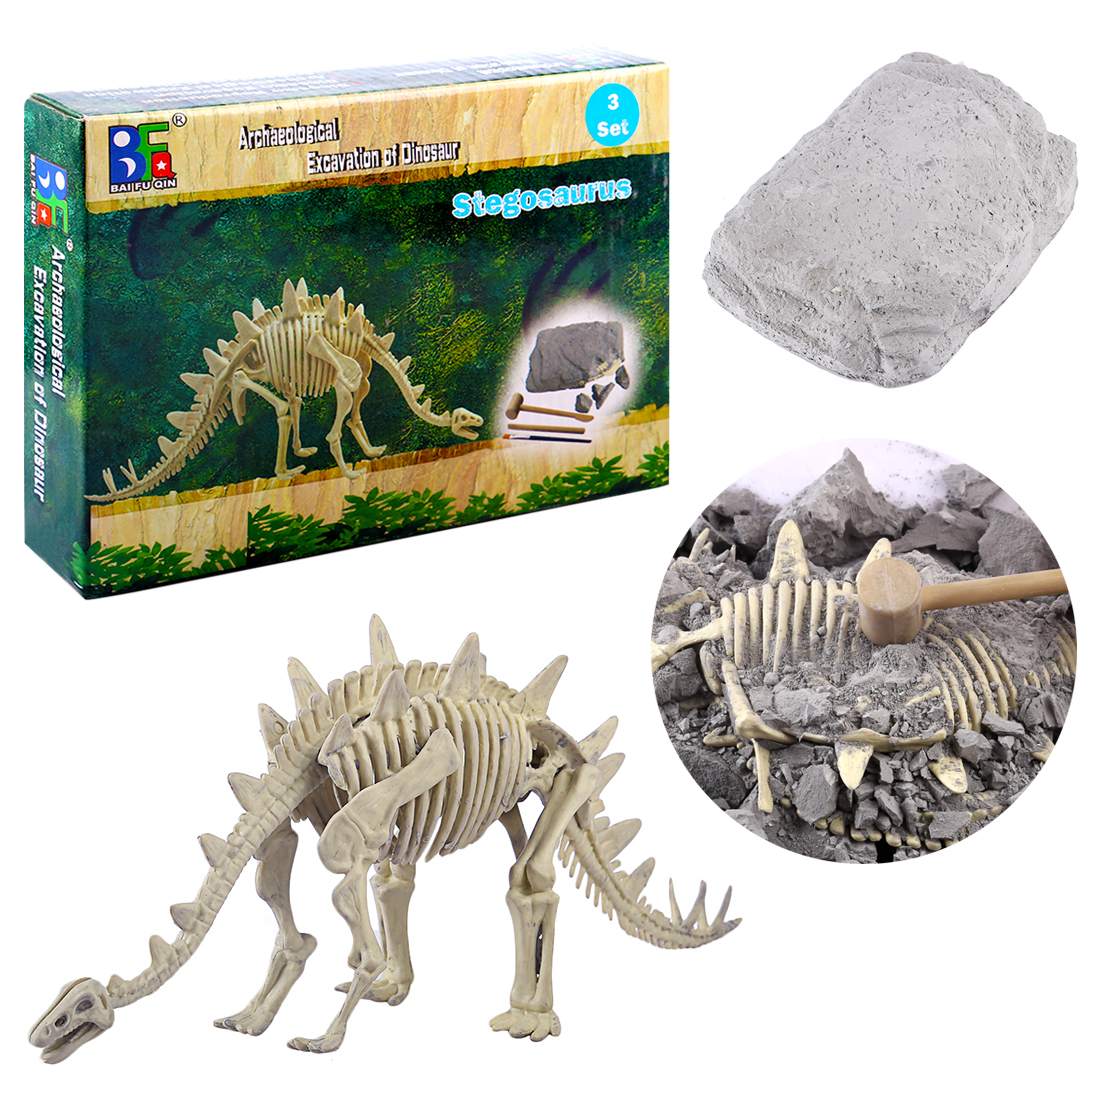 1pcs Dinosaur Excavation Kit Archaeology Dig Up Fossil Skeleton Toy Gift For Kid 5-7 Years Animals & Nature Learning & Education